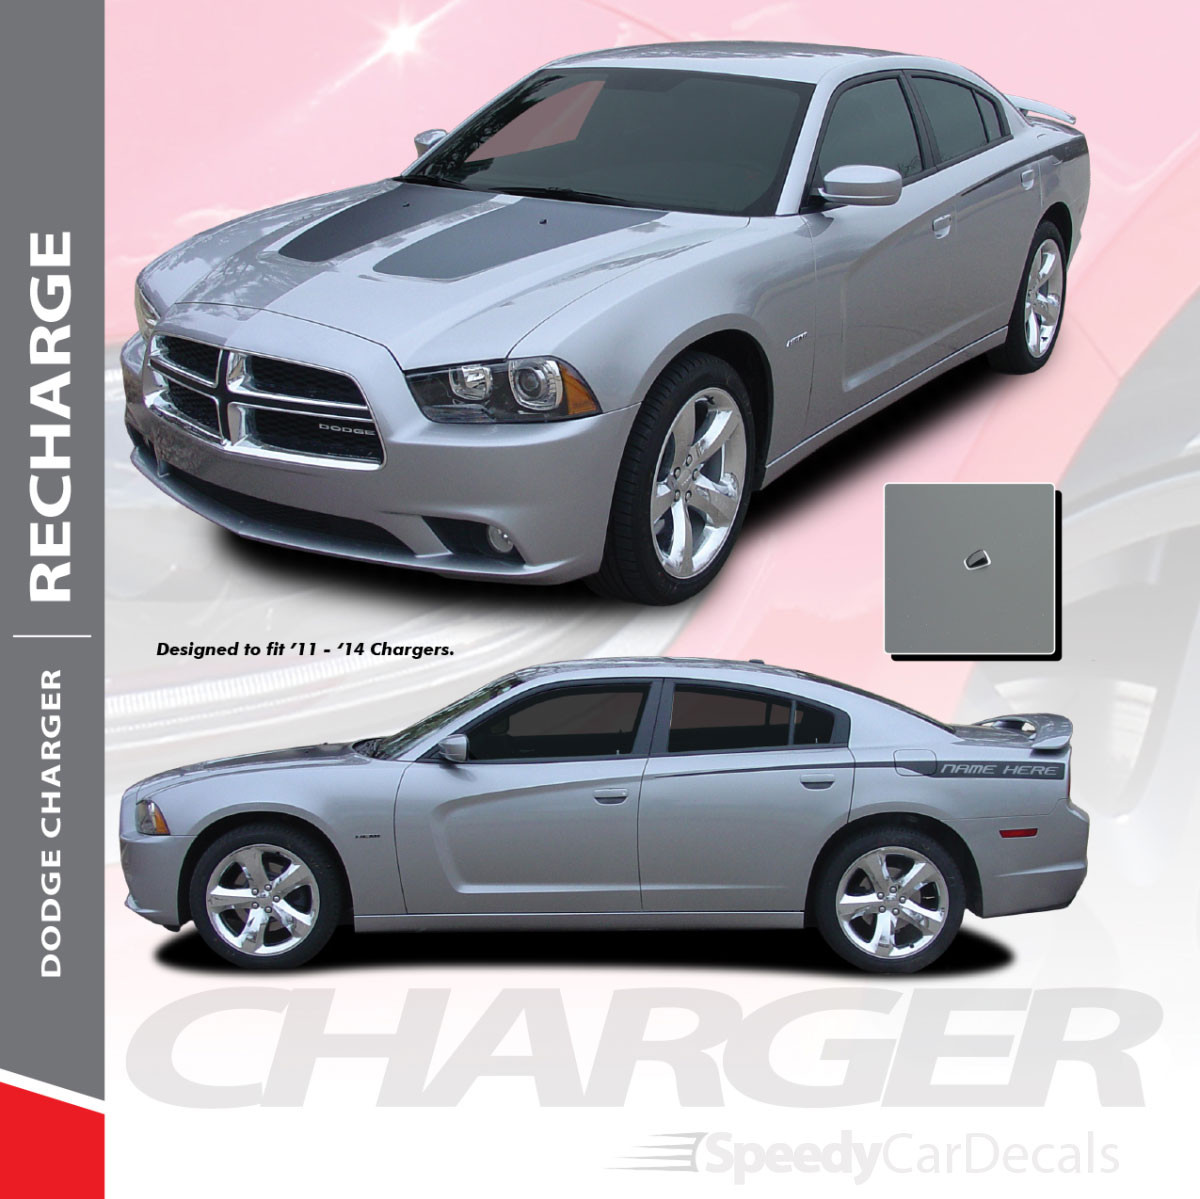 RECHARGE | 2011-2014 Dodge Charger RT With Stripes